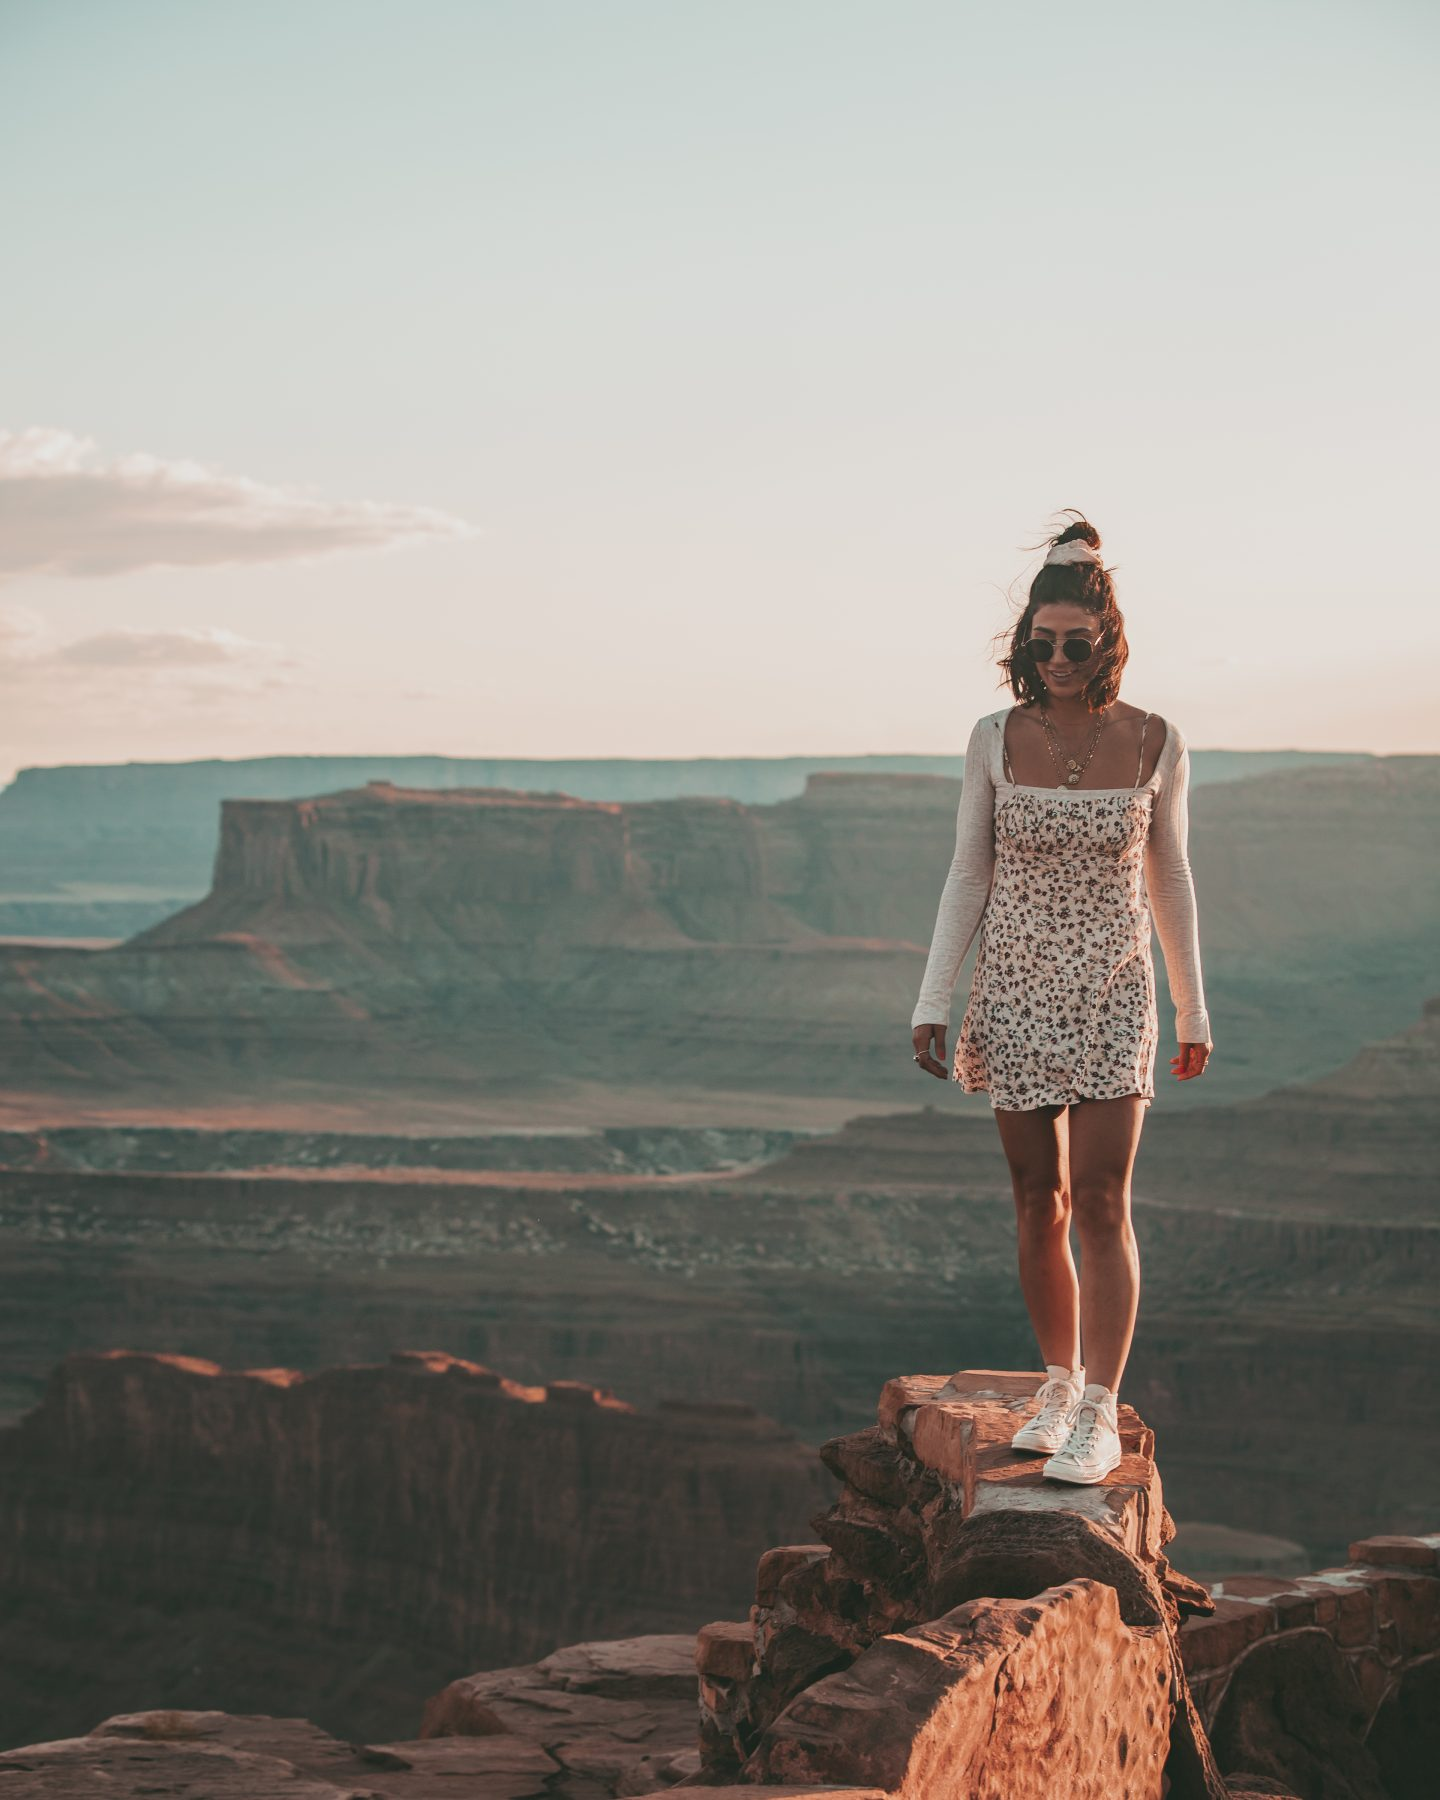 Lisa Homsy at Dead Horse Point